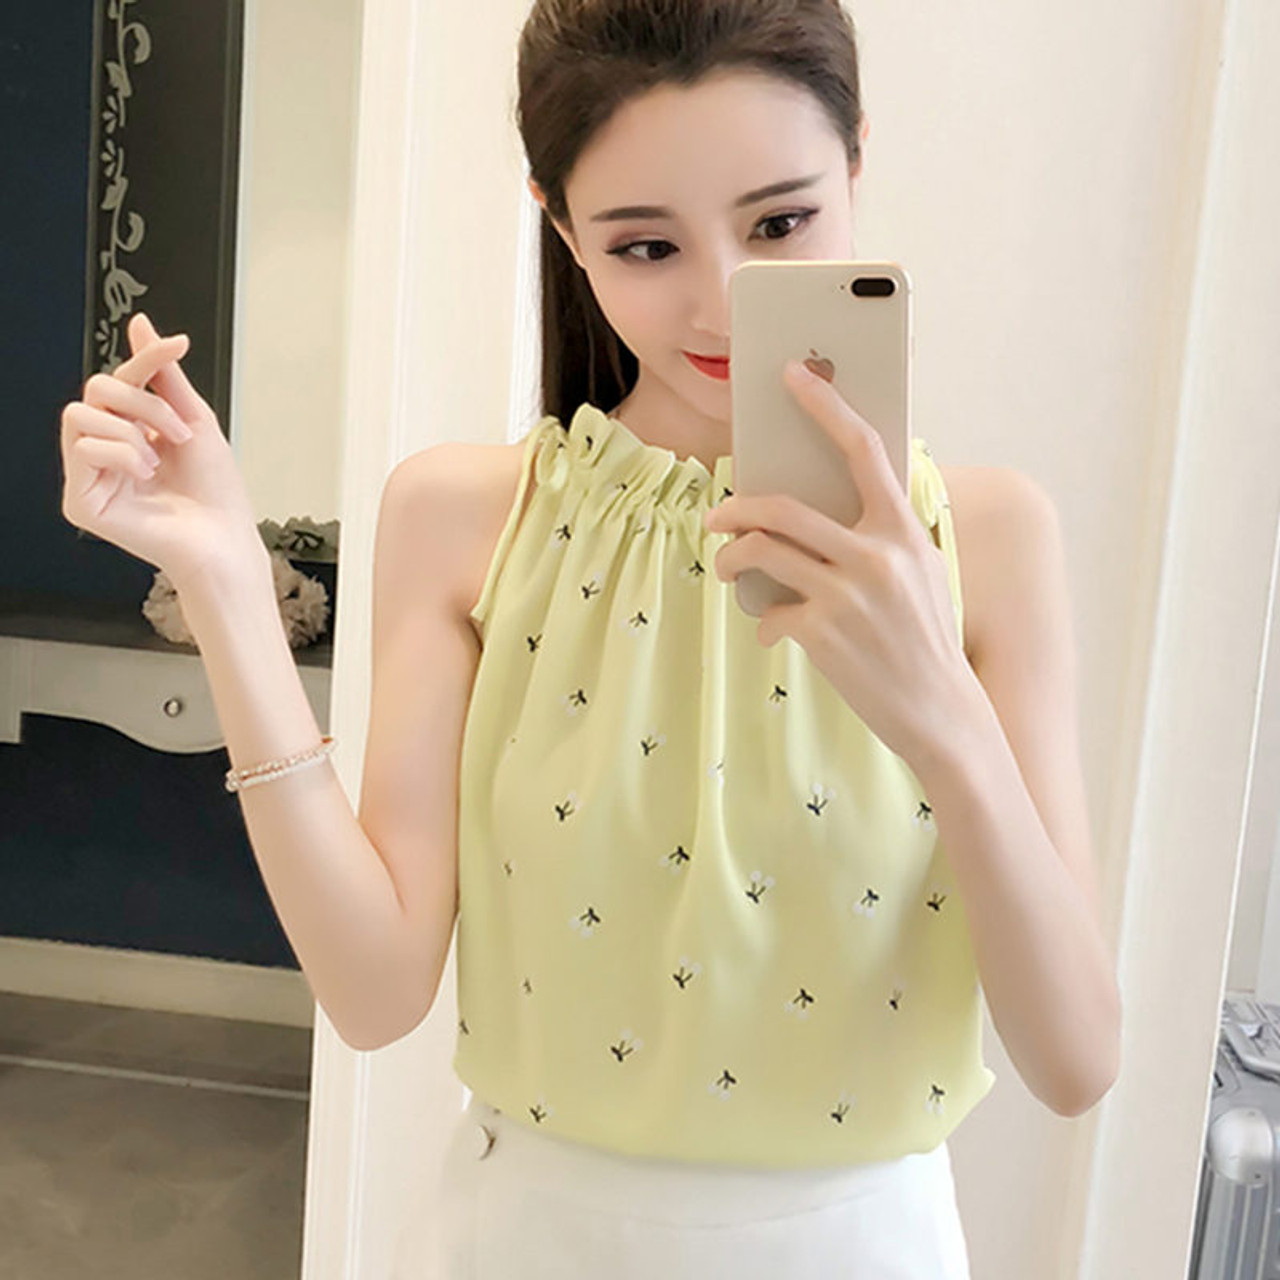 57de8e4cd0a1 ... Women Blouses 2018 Fashion Elegant Print Chiffon Blouse Sleeveless  Shirts Casual summer Top Ladies Clothing Blusa ...